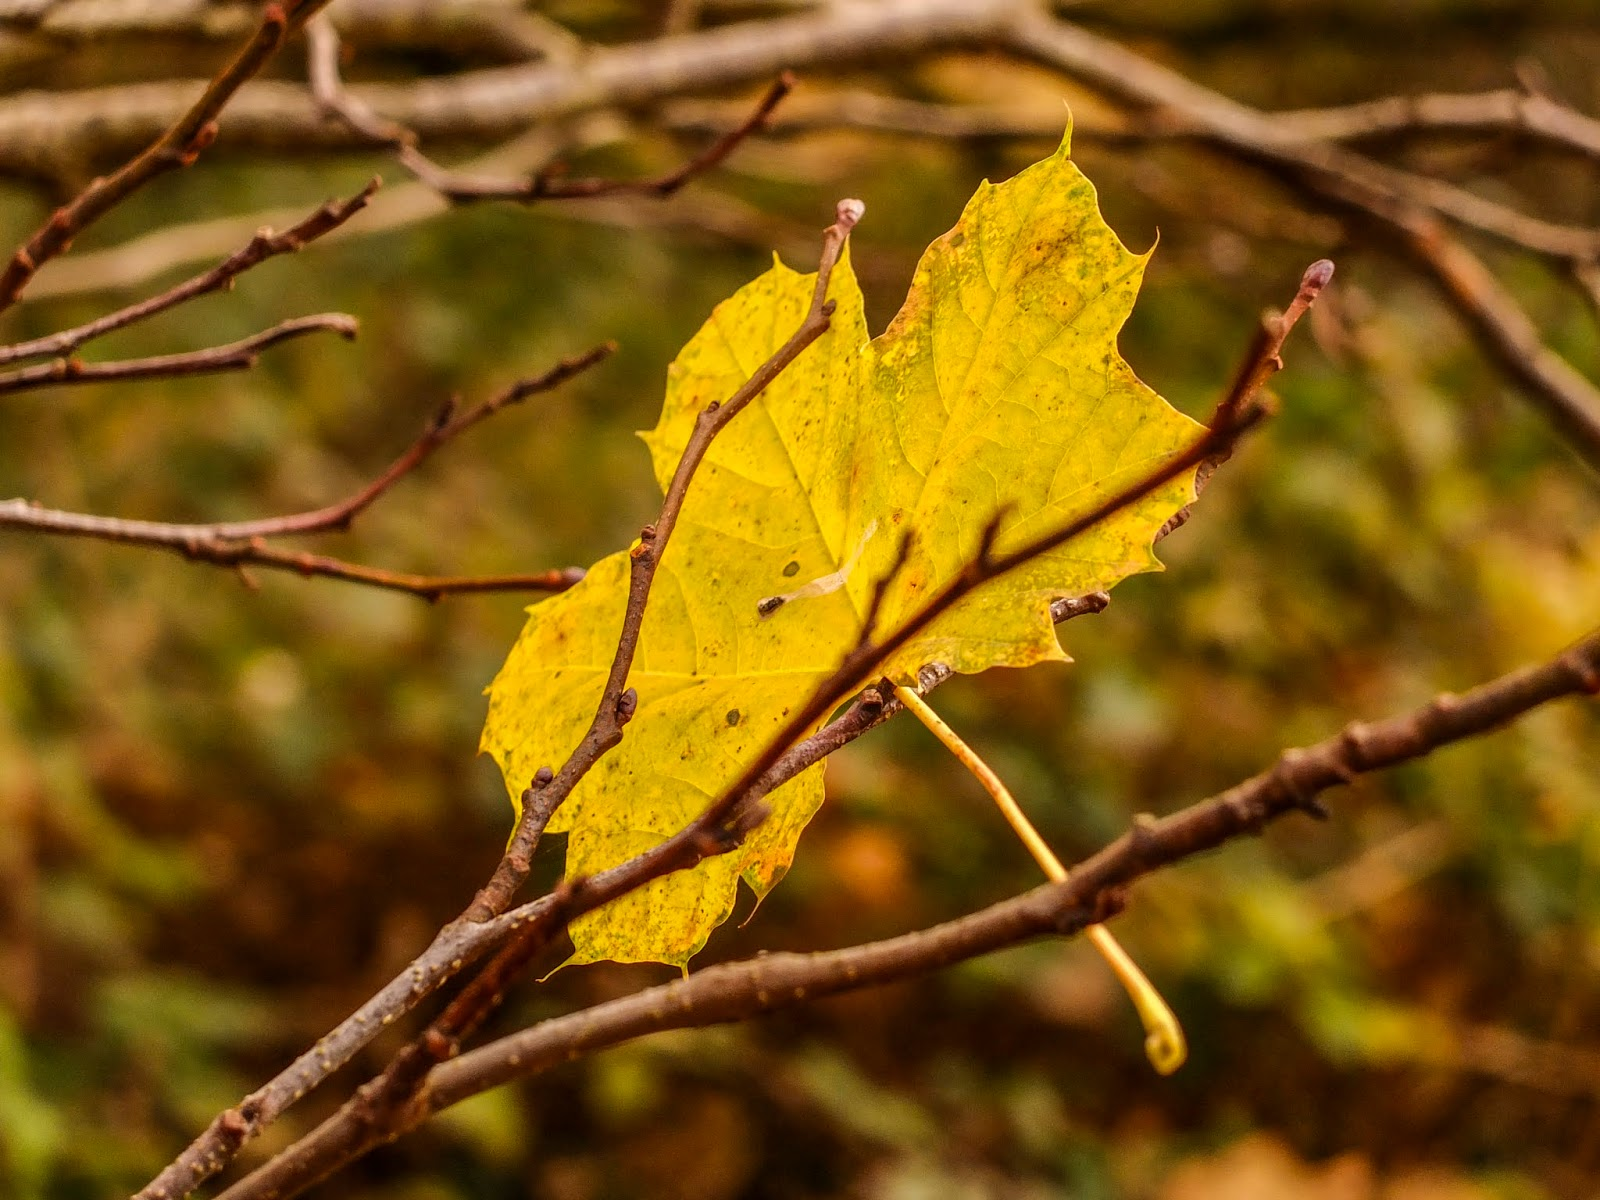 A yellow Maple tree leaf stuck in the branches.